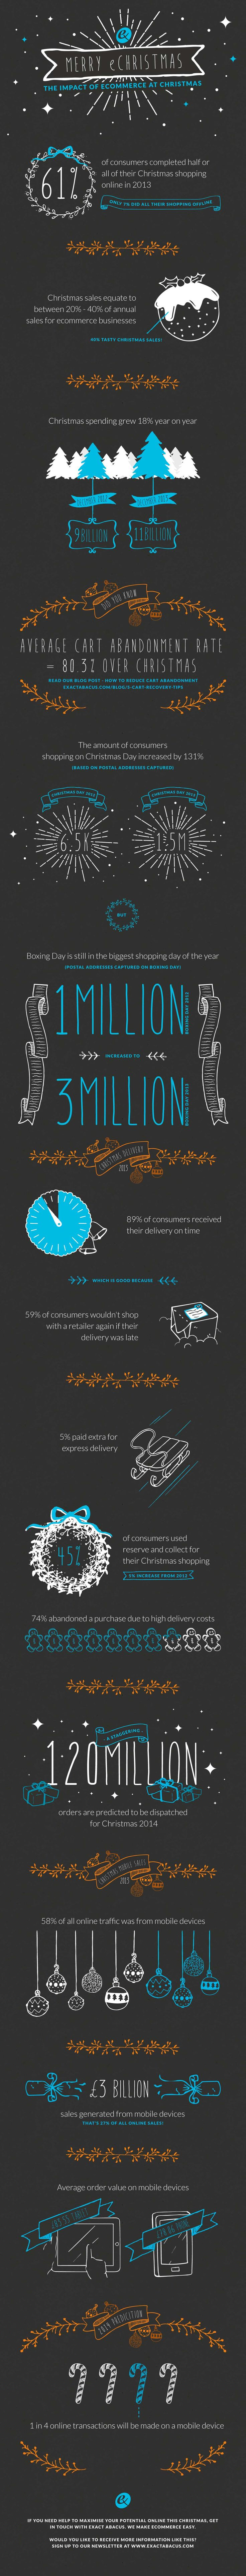 a #Christmas #infographic on #ecommerce